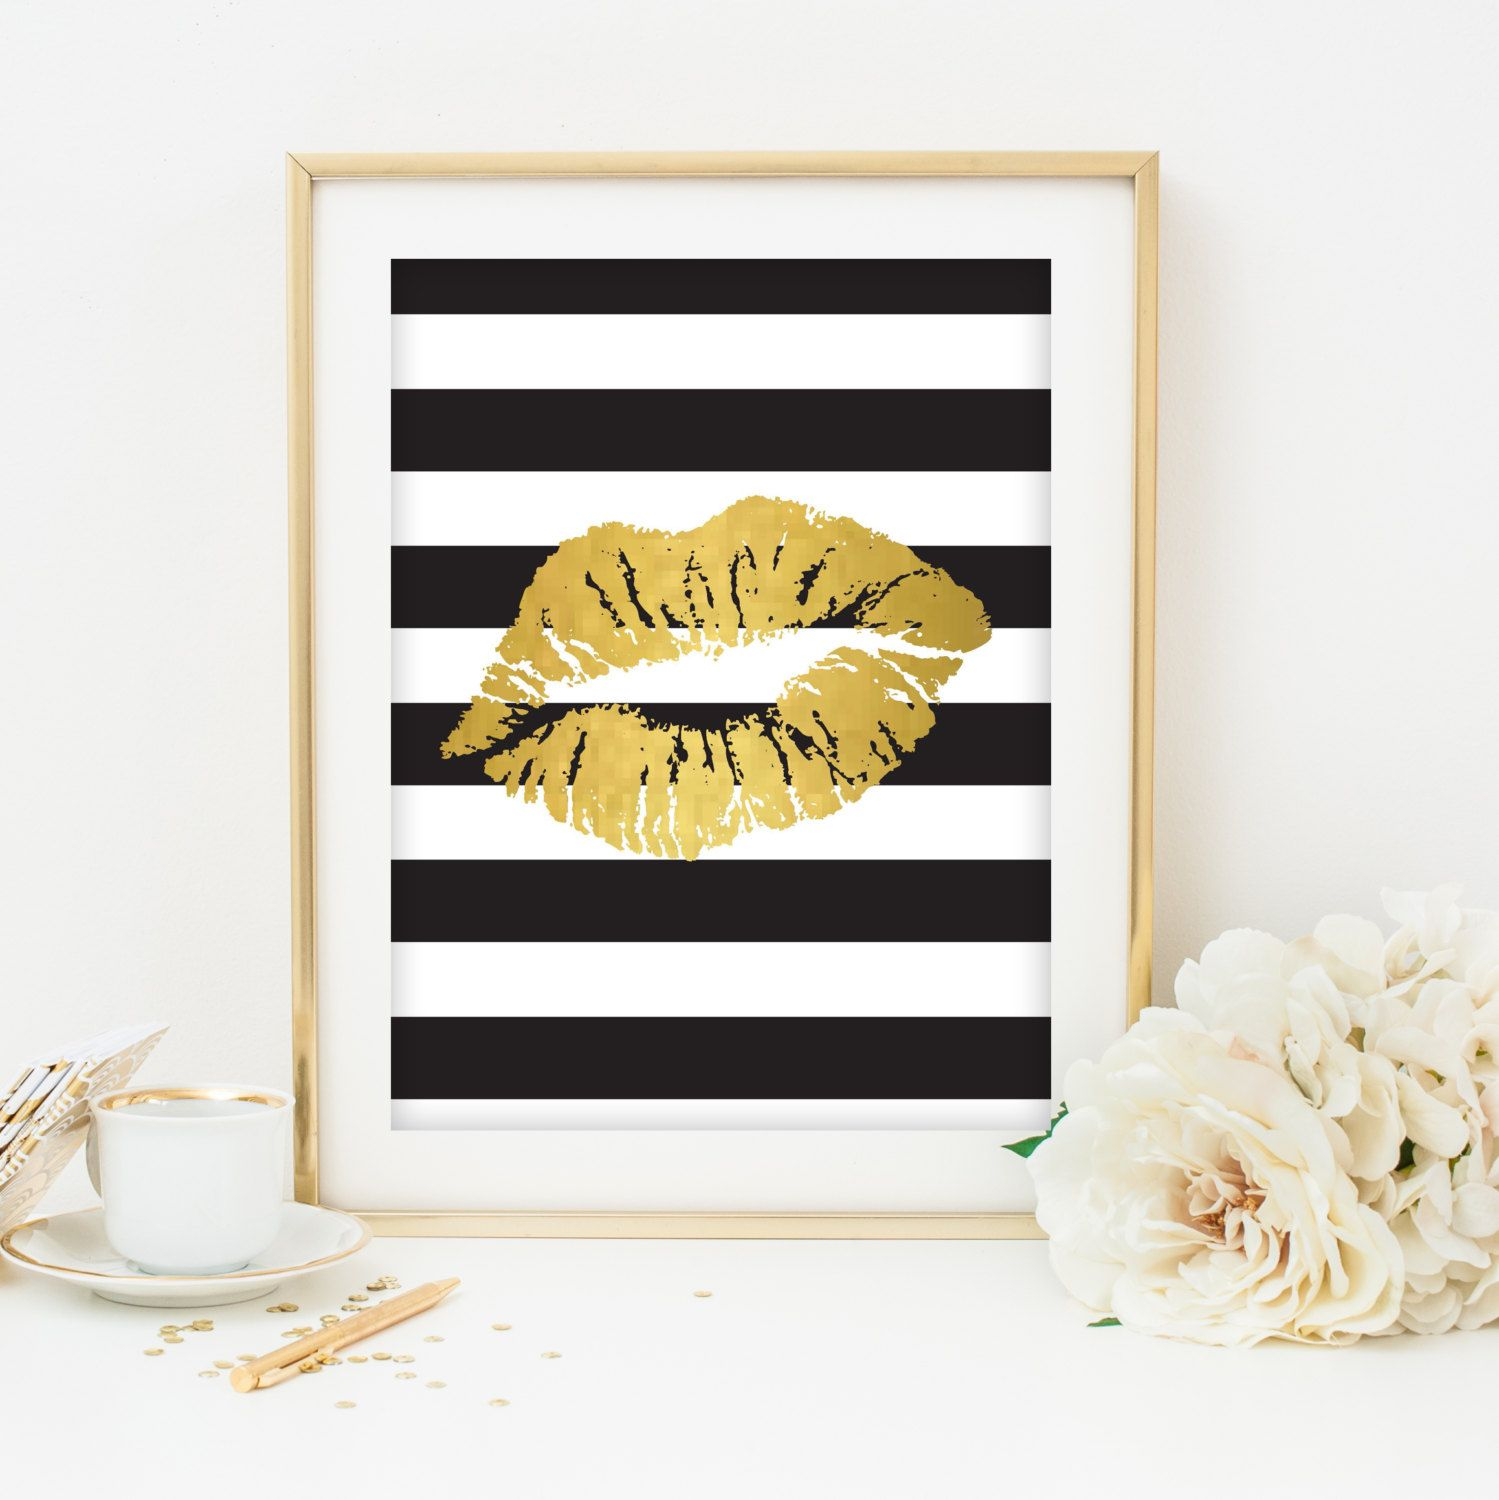 Home wall decor bedroom - Black White And Gold Print Printable Art Dorm Room Decoration Bedroom Decor Home Decor Lips Print Kiss Print Black And White Stripes Print Usd By